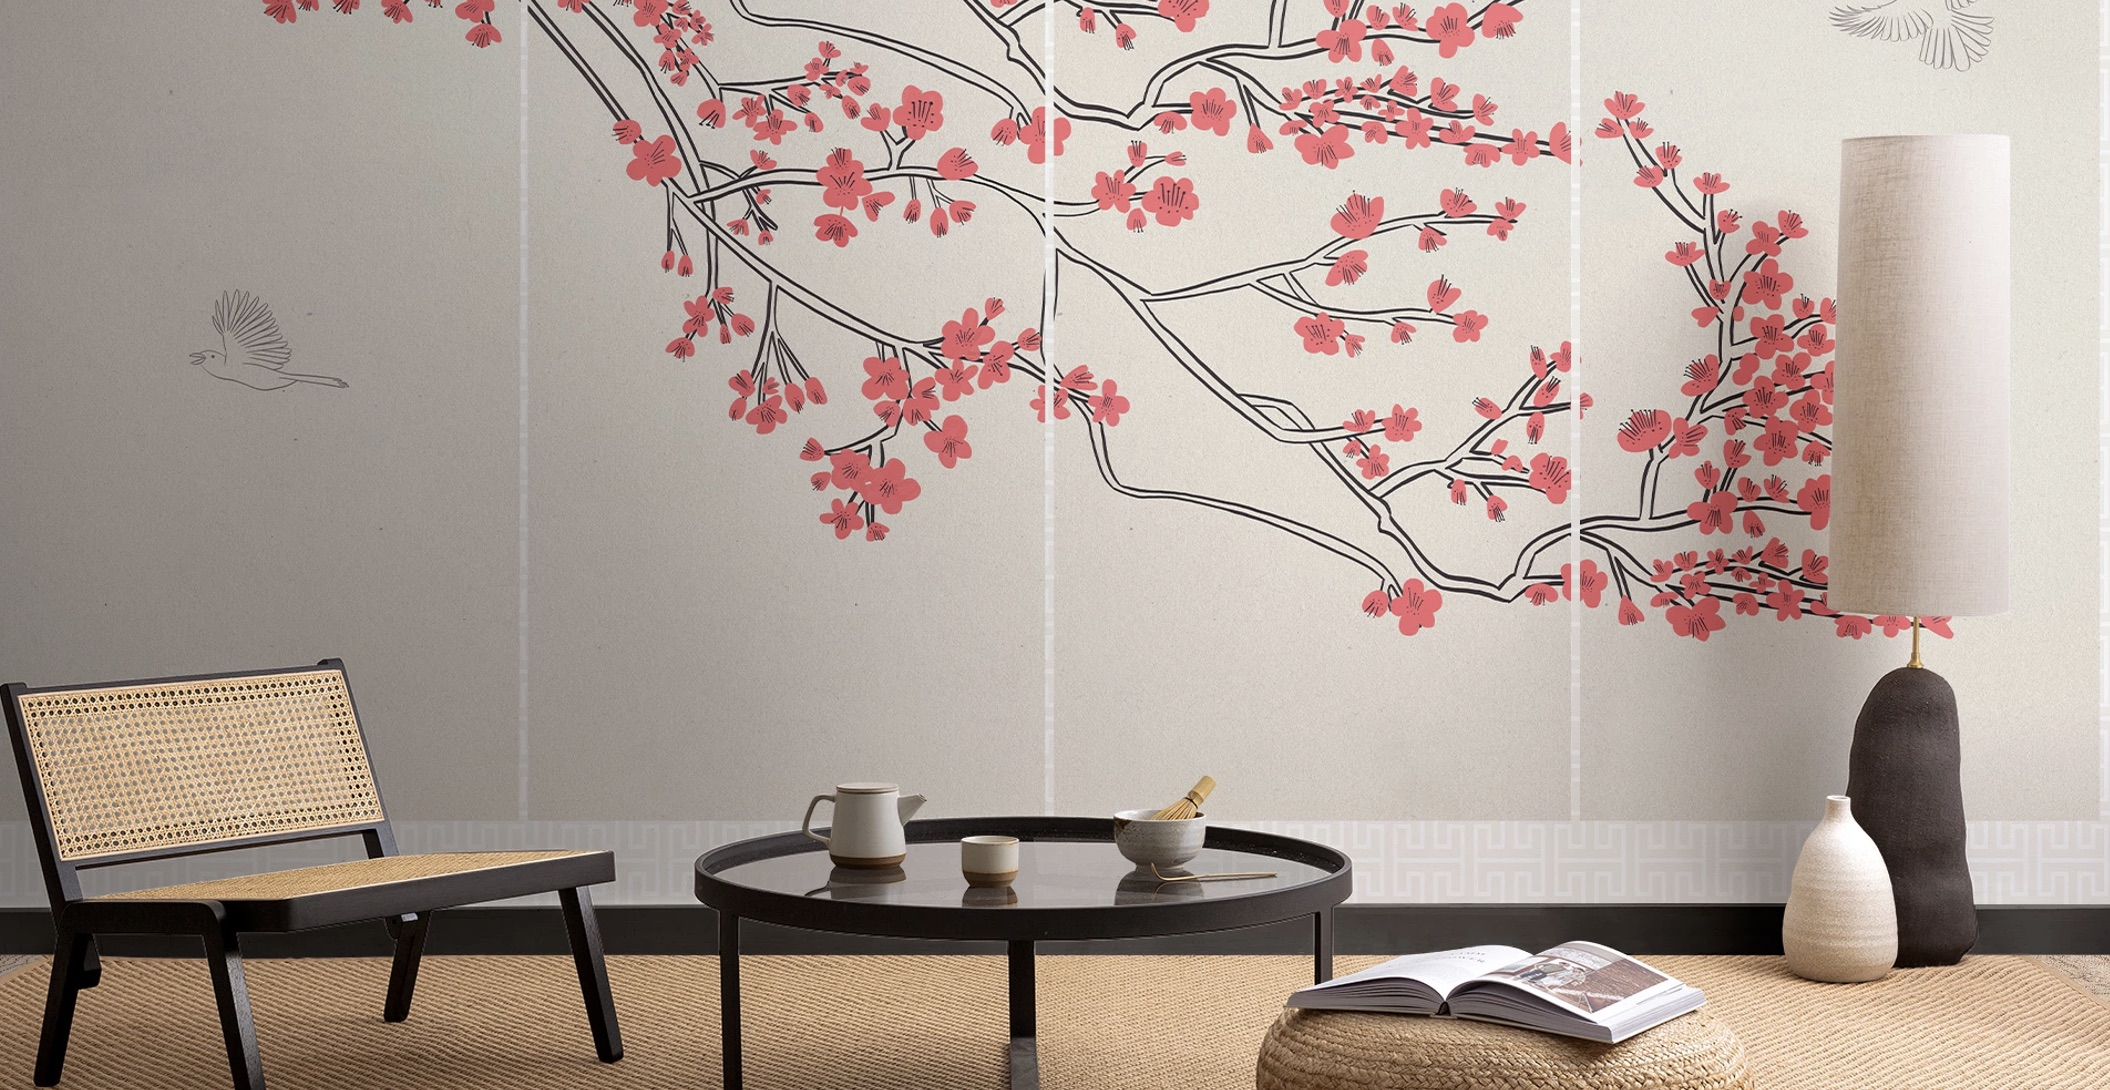 Murals inspired by Japanese design